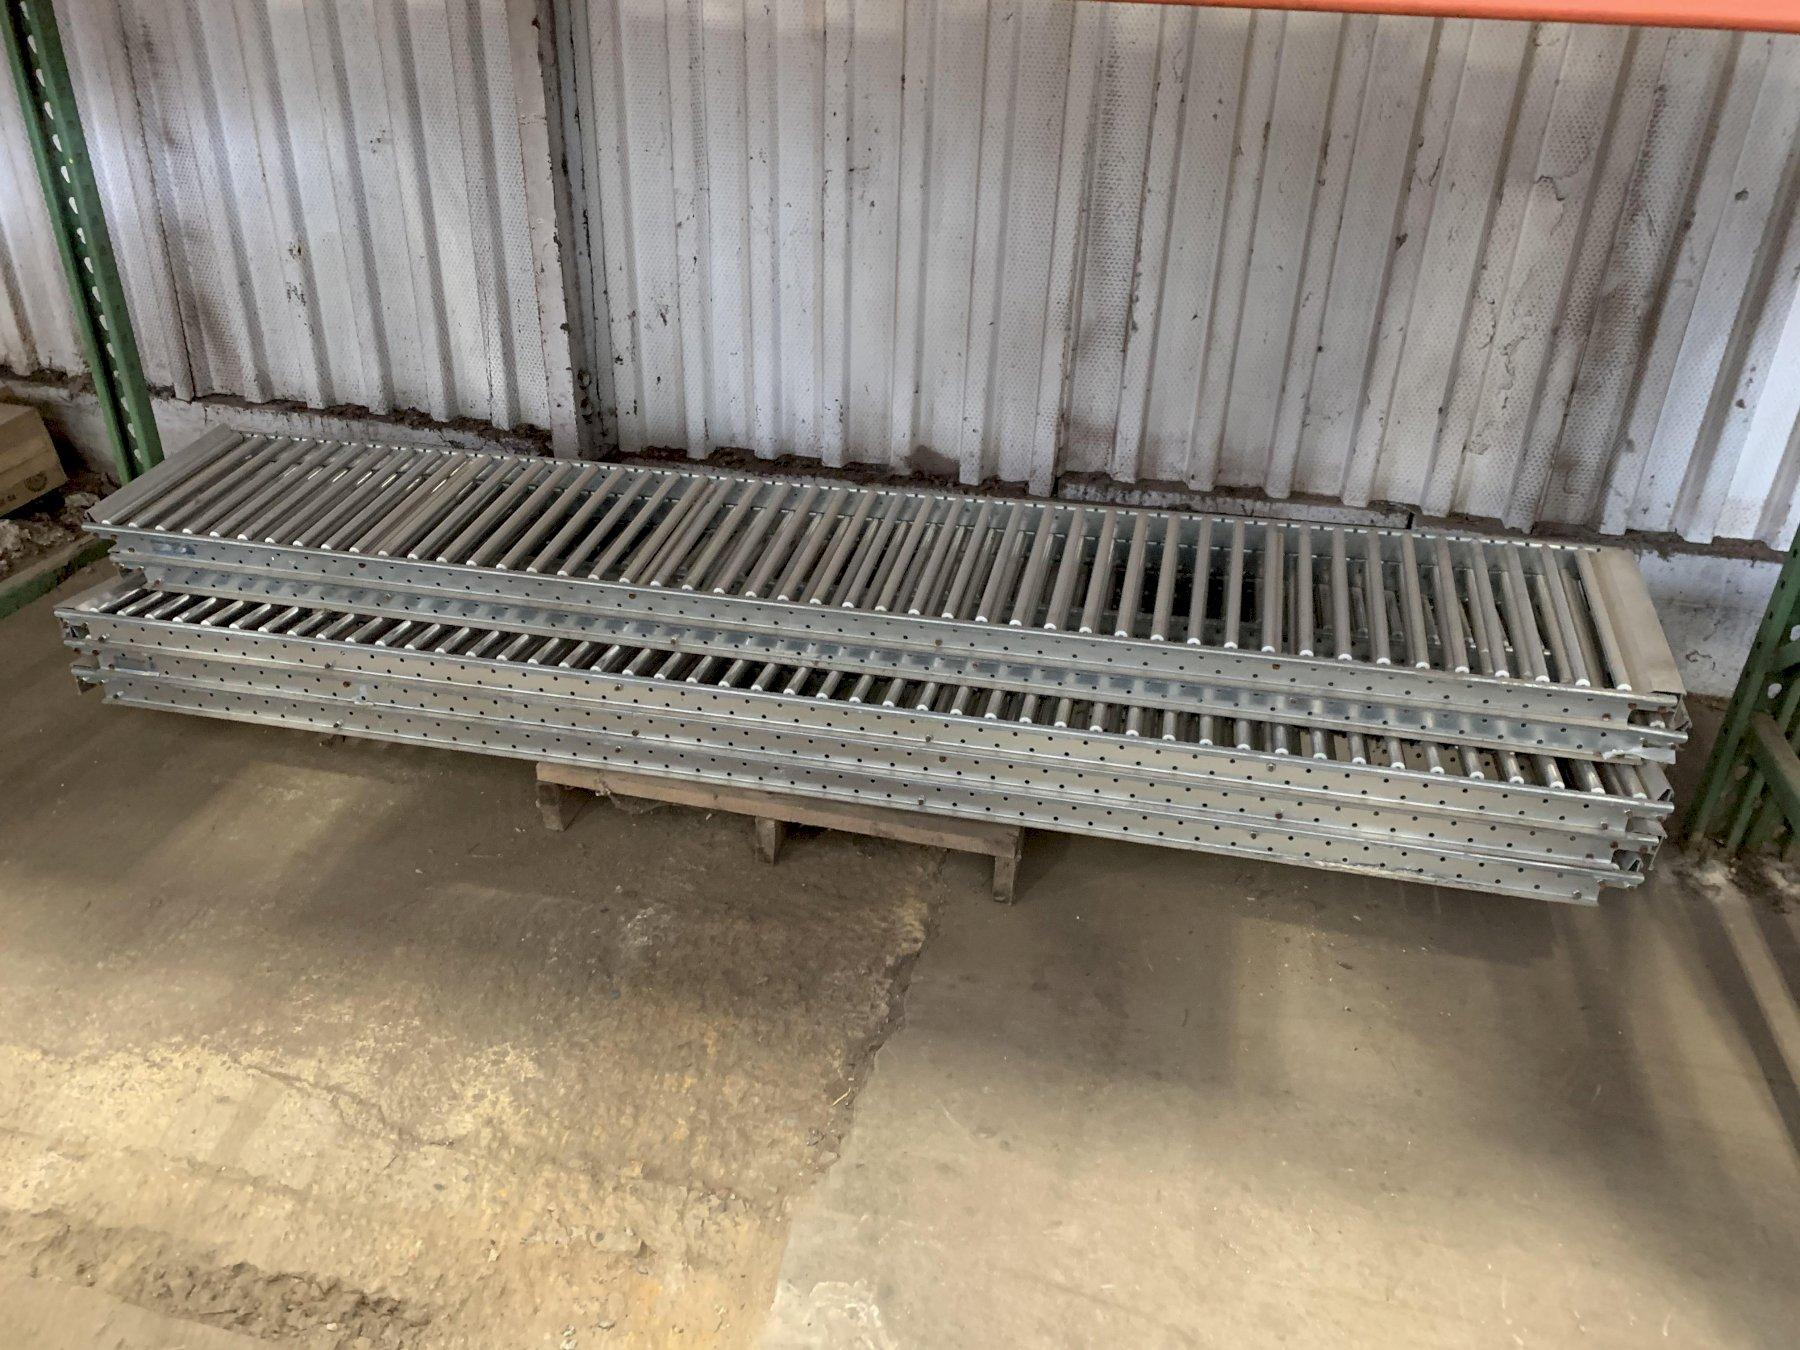 (8) 8' x SPAN TRACK ROLLER CONVEYORS: STOCK 12556